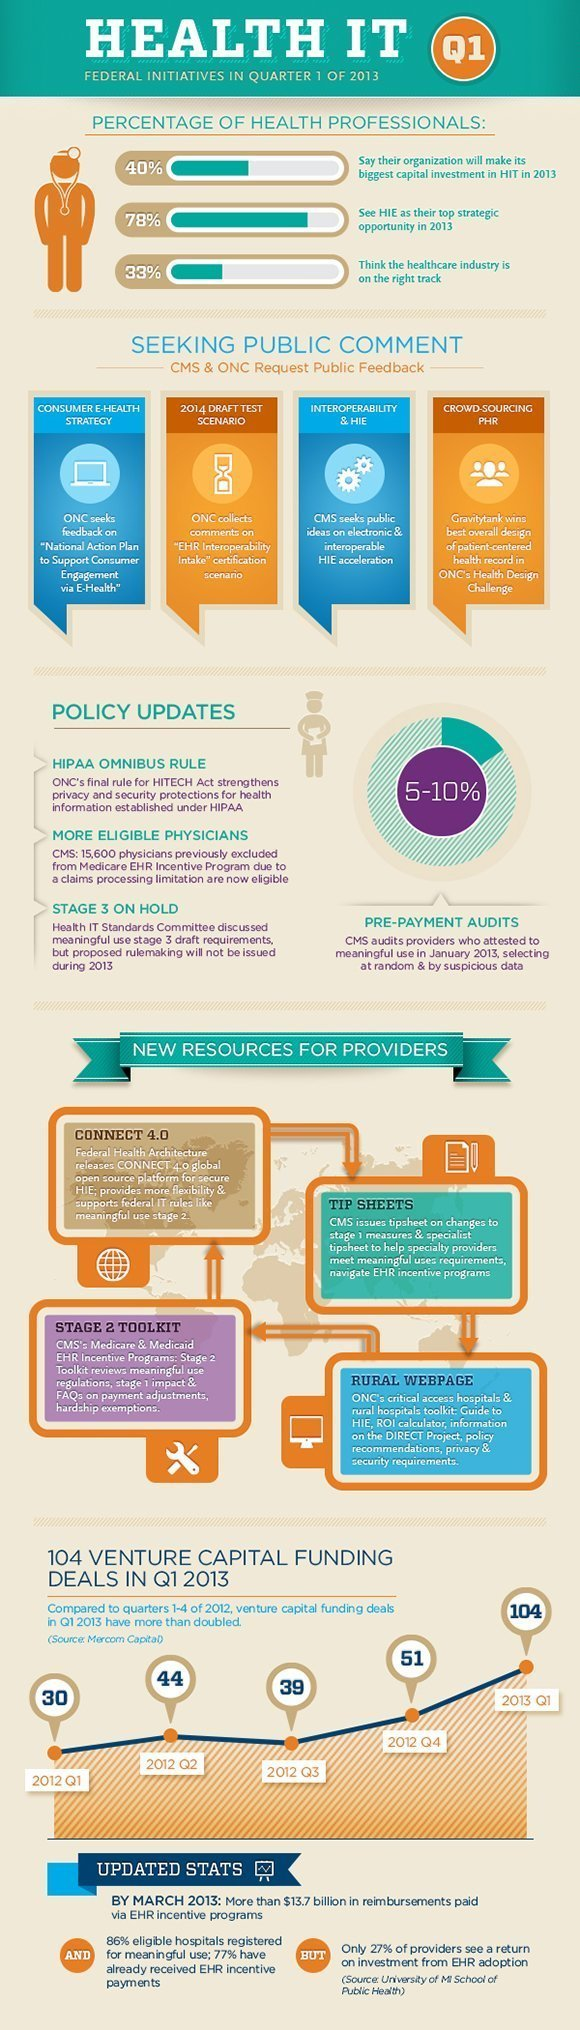 SearchHealthIT original infographic: Federal health IT activity